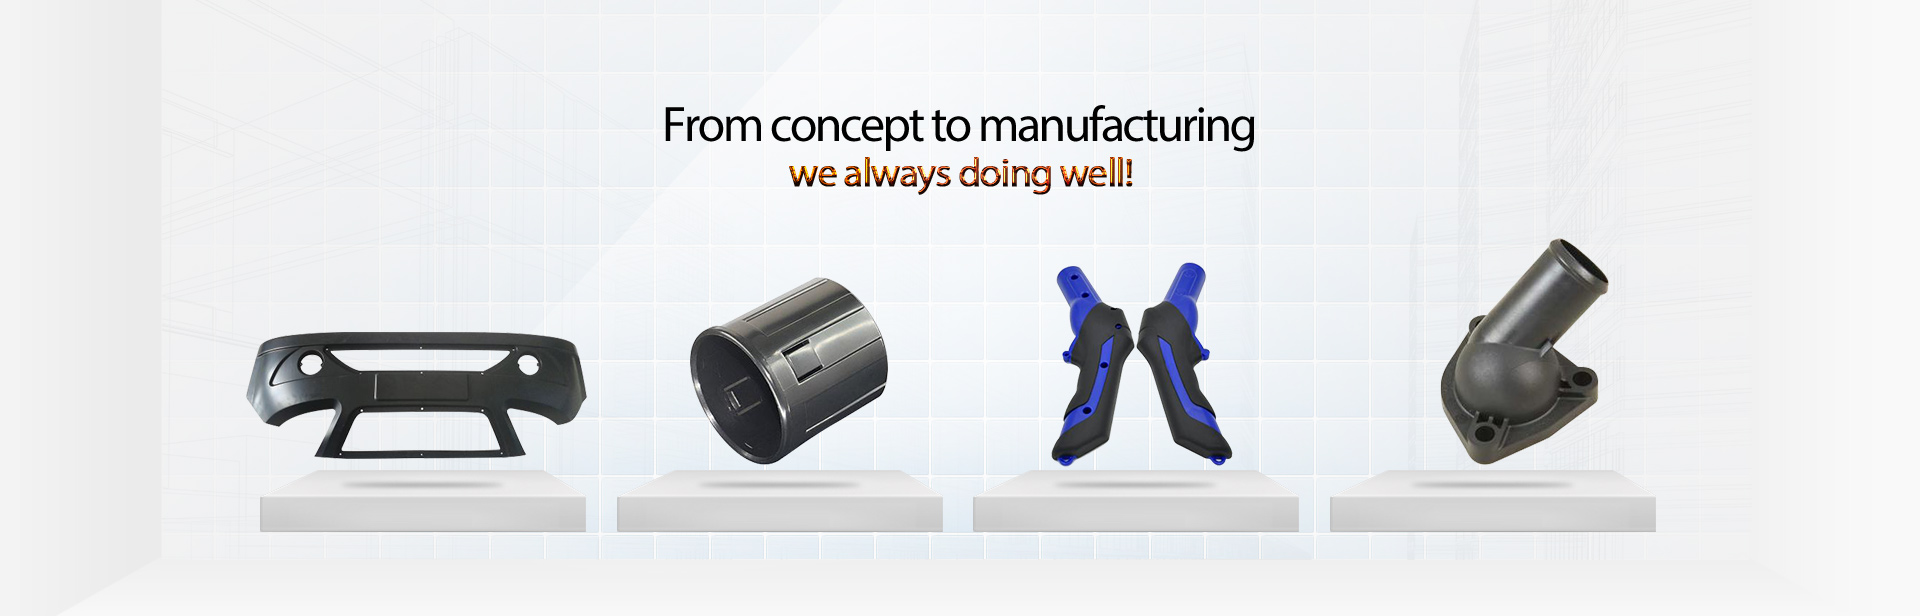 plastic injection moulding, moulding supplier, injection moulding service, molded parts supplier